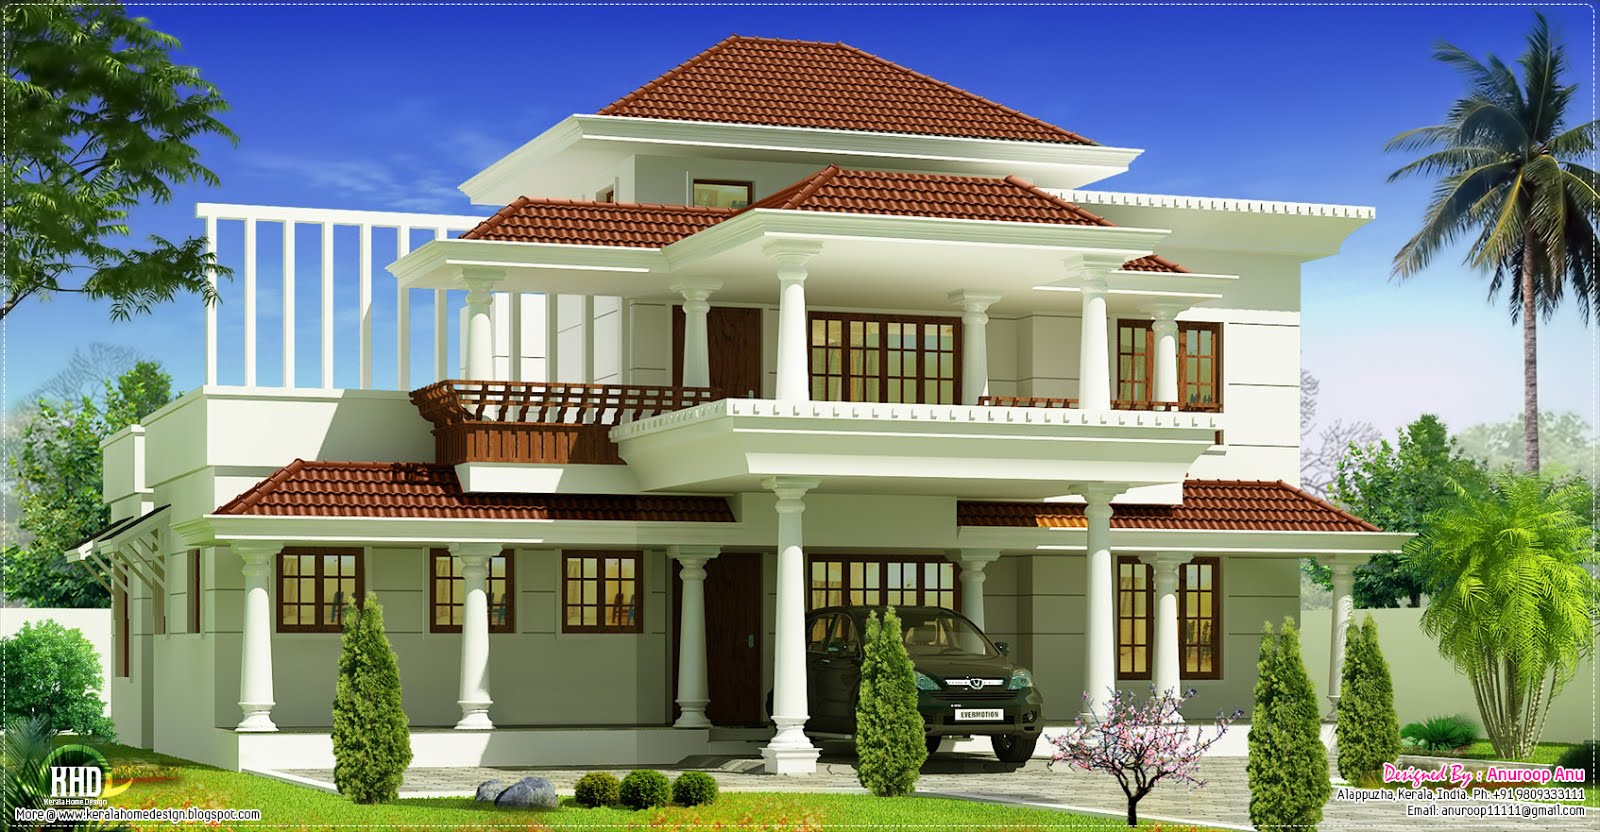 Kerala house models houses plans designs for Kerala house photos